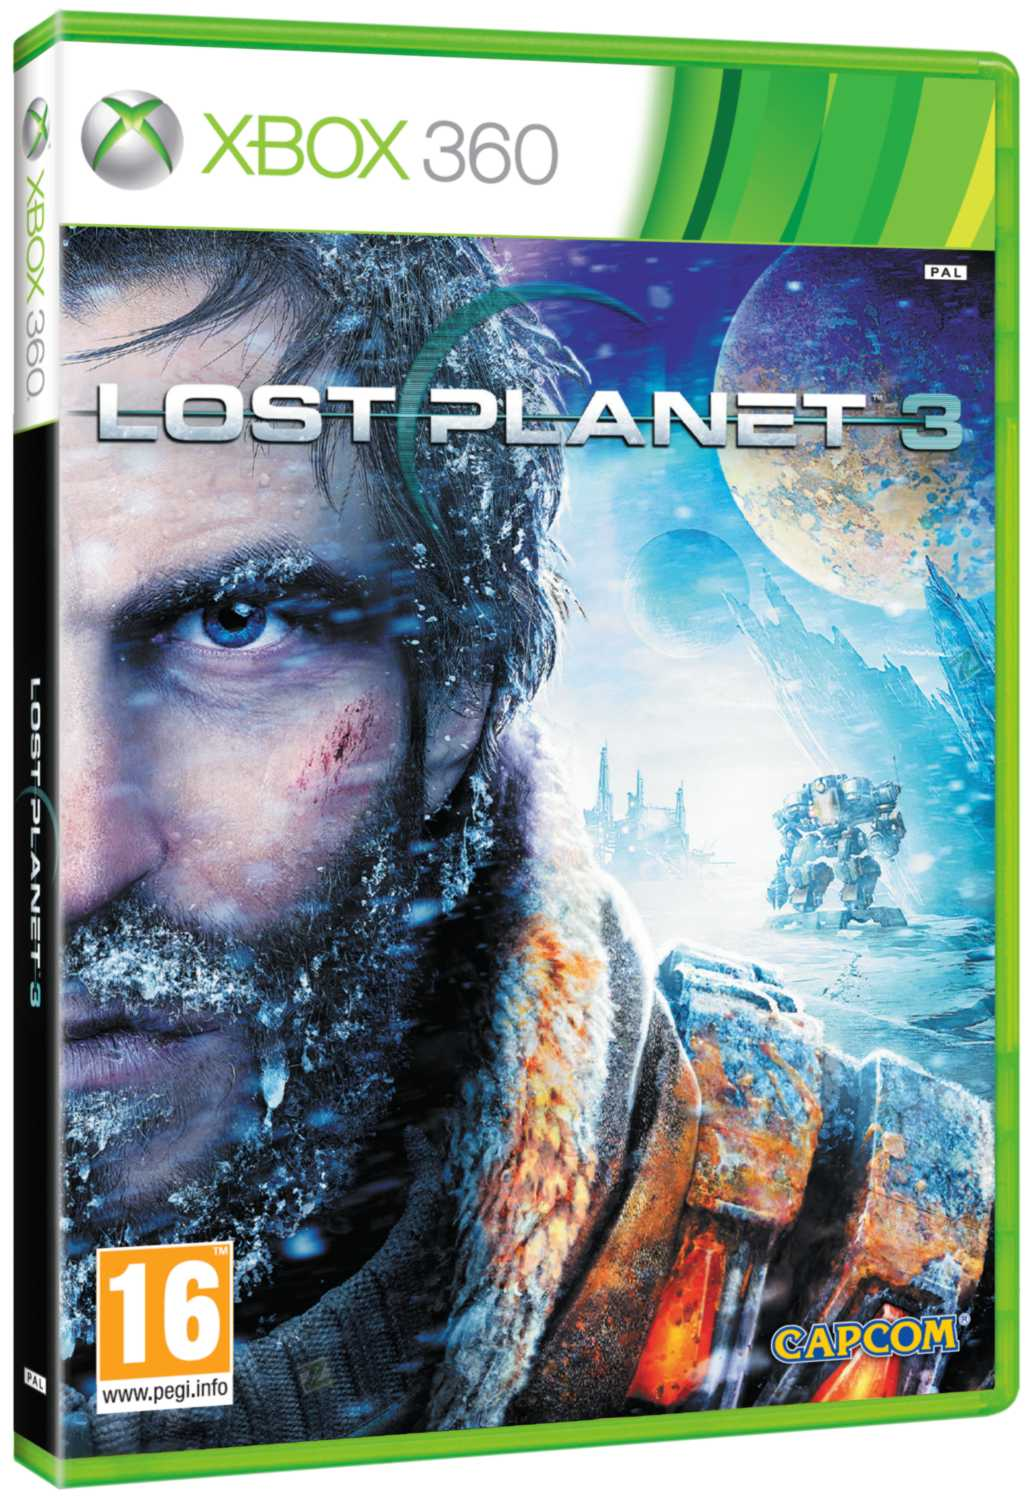 LOST PLANET 3 - X360